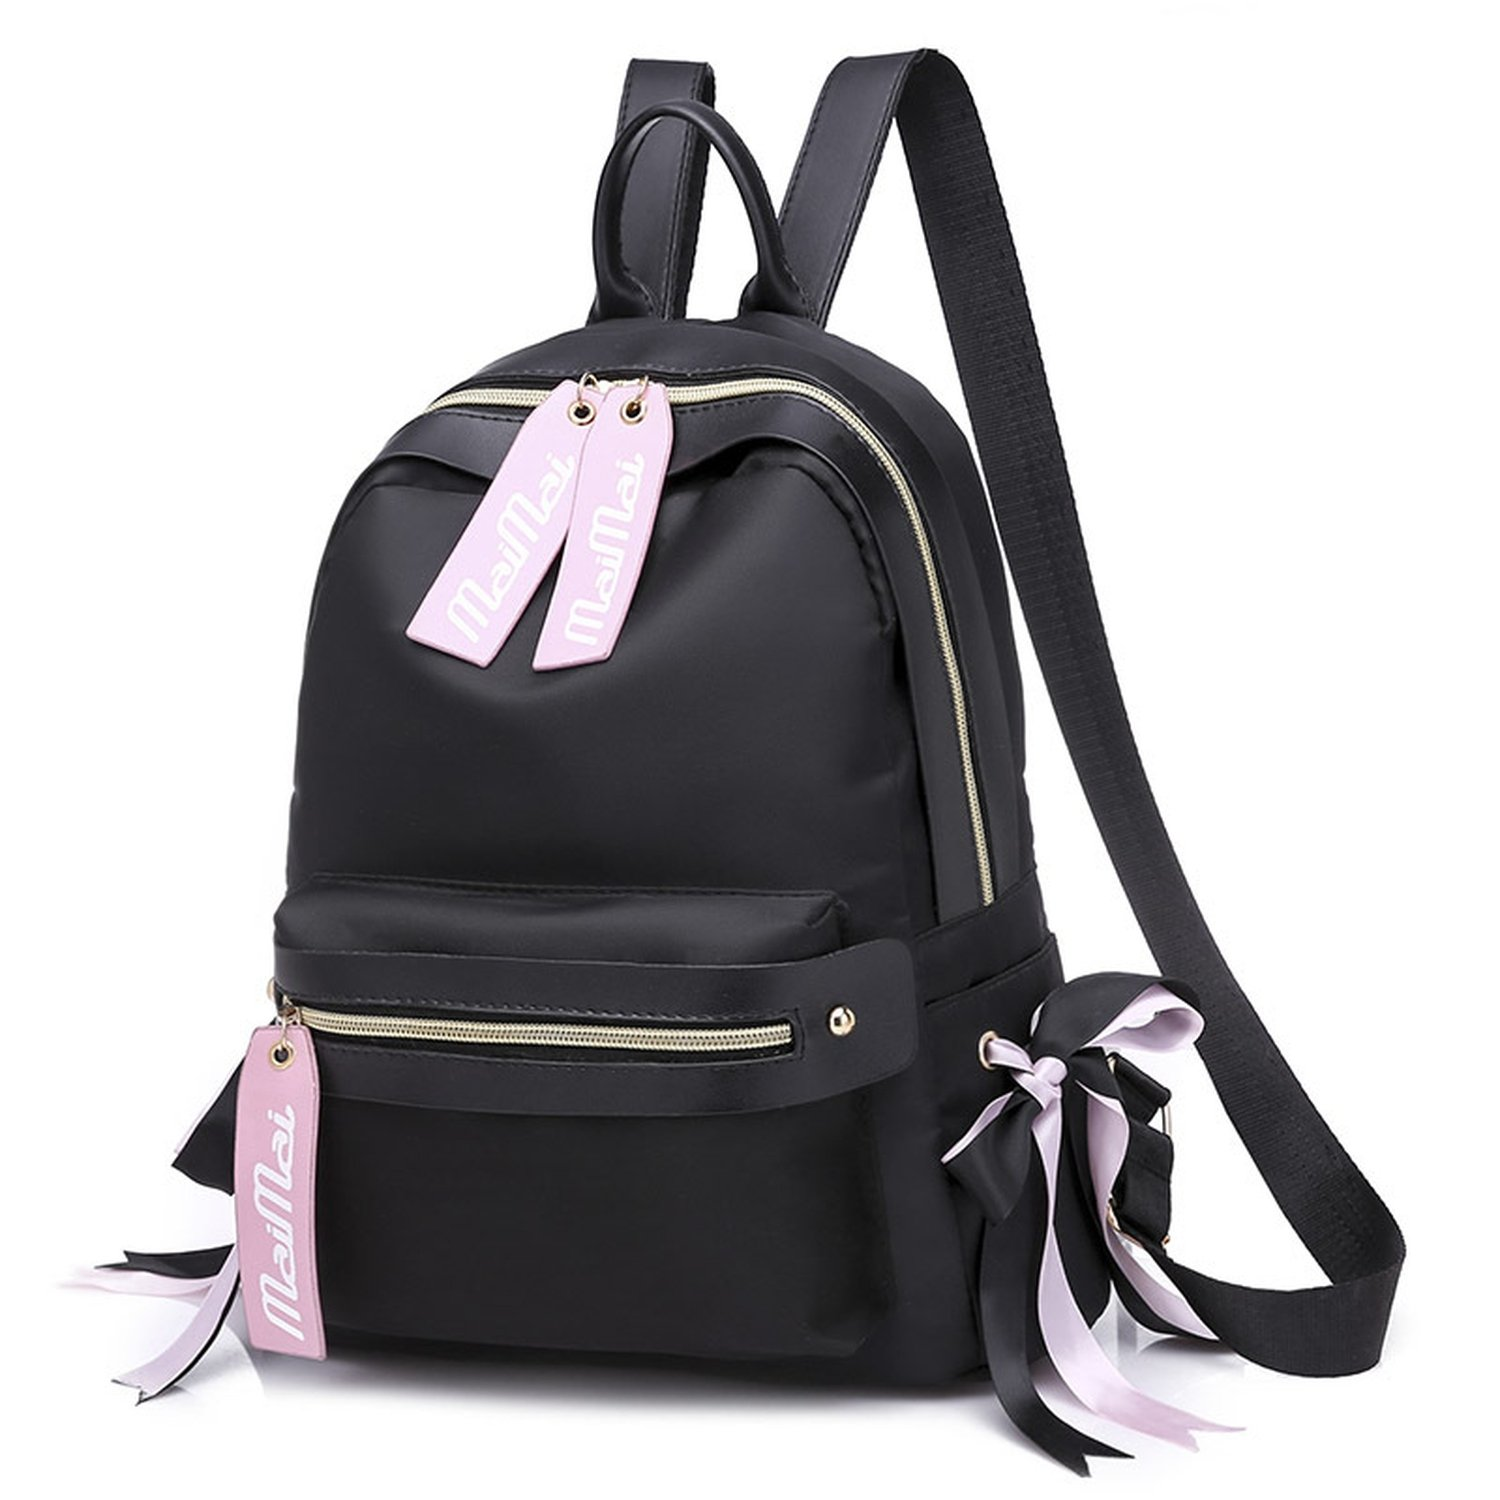 backpack femaleOxford cloth backpack fashion ribbon wild backpack,black